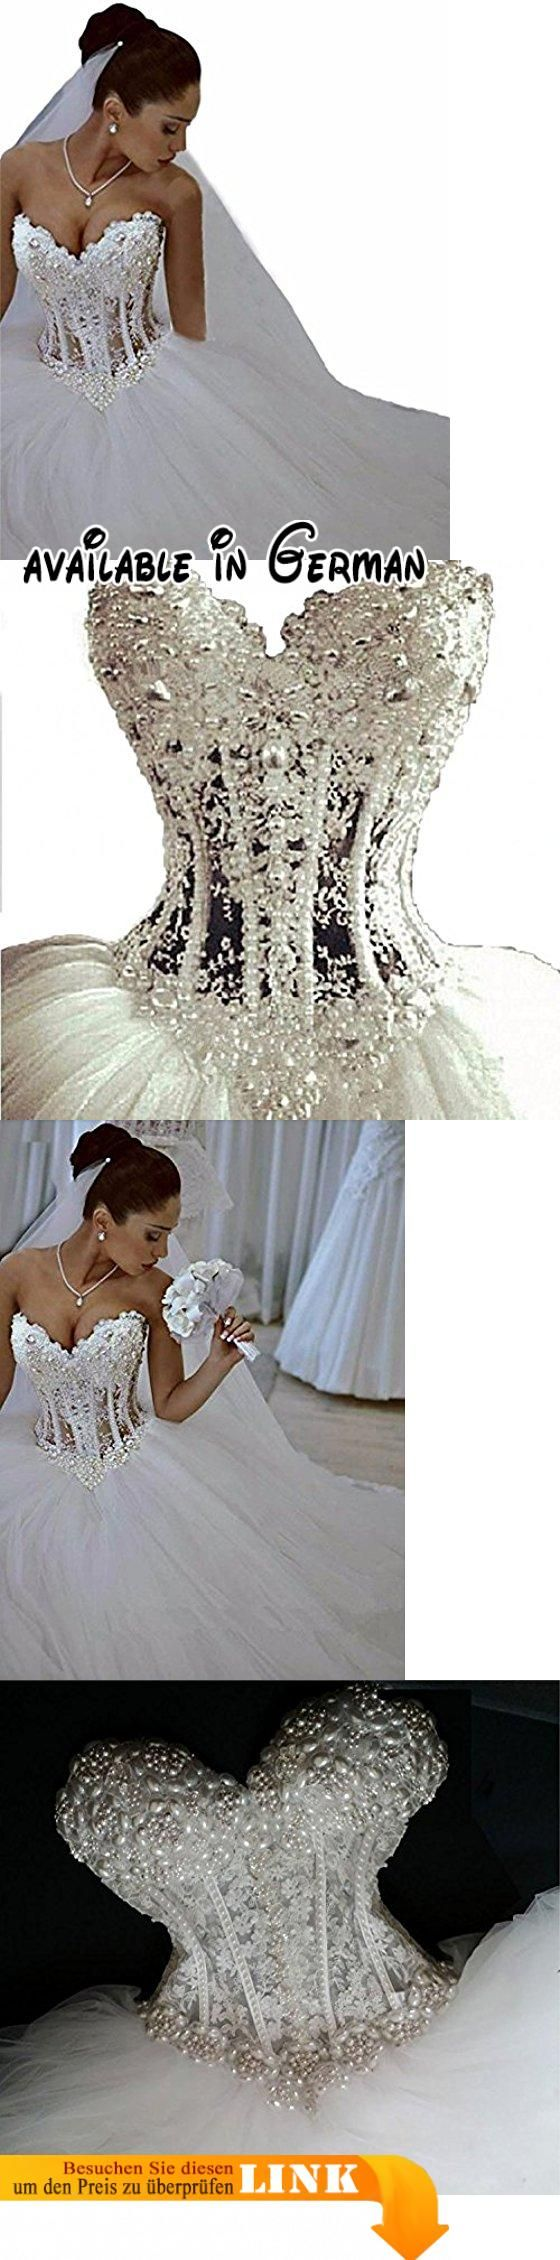 Changjie Damen Schulterfrei Brautkleid Prinzessin Luxus Kristall Perlen T¨¹ll Brautkleid Hochzeitskleid Lang. Organza, tulle,it is very soft and comfortable. Neckline:Strapless,The top are embellished with luxury beadings,it's shining. If u need it urgent,please feel free to contact us through message,we will check and let u know if we can finish on time. Note:Please check and use Amazon's Size Chart,Check carefully before order so as to avoid size problems,what we made